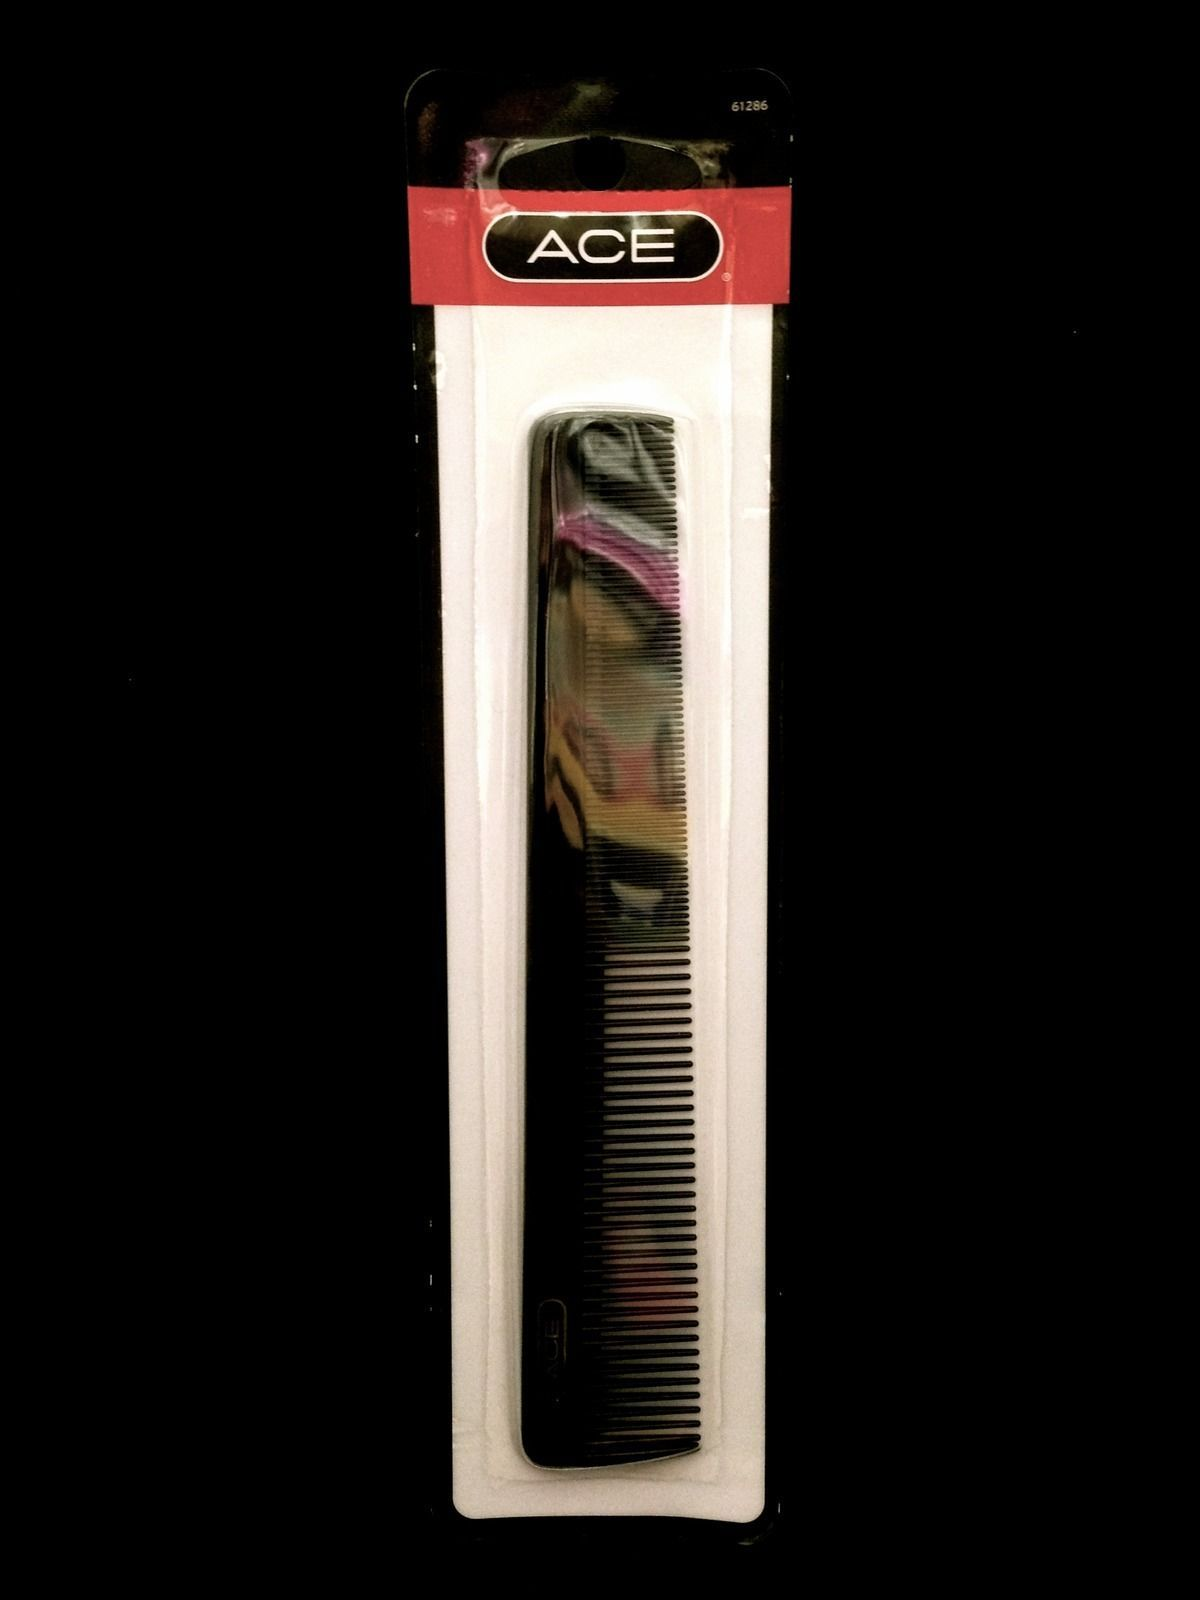 "ACE ALL PURPOSE COMB FOR EVERYDAY USE AND ALL HAIR TYPES 7"" #61286"